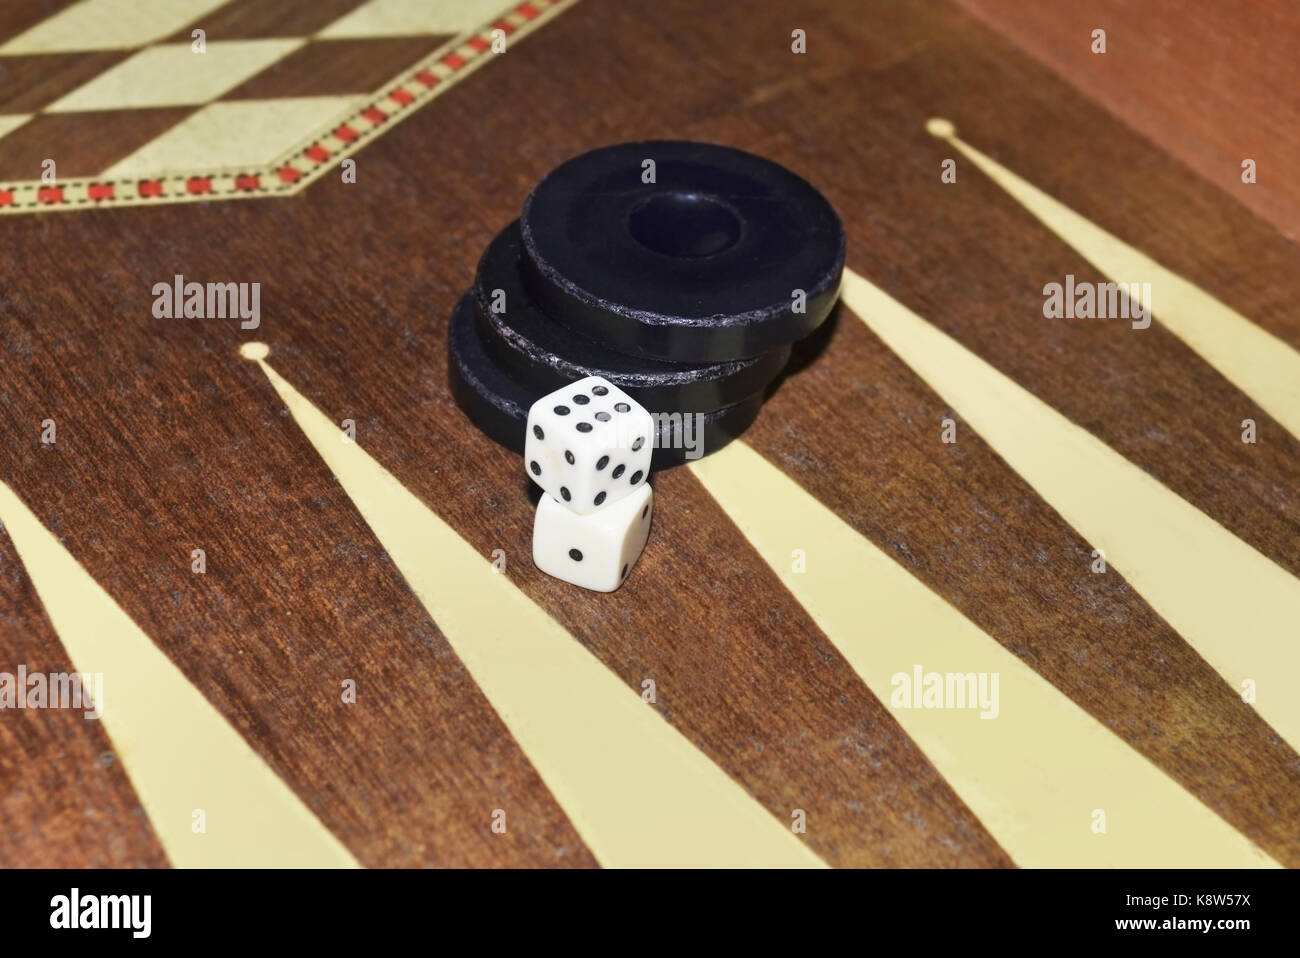 greek tavli or backgammon - board game with dice and checkers Stock Photo